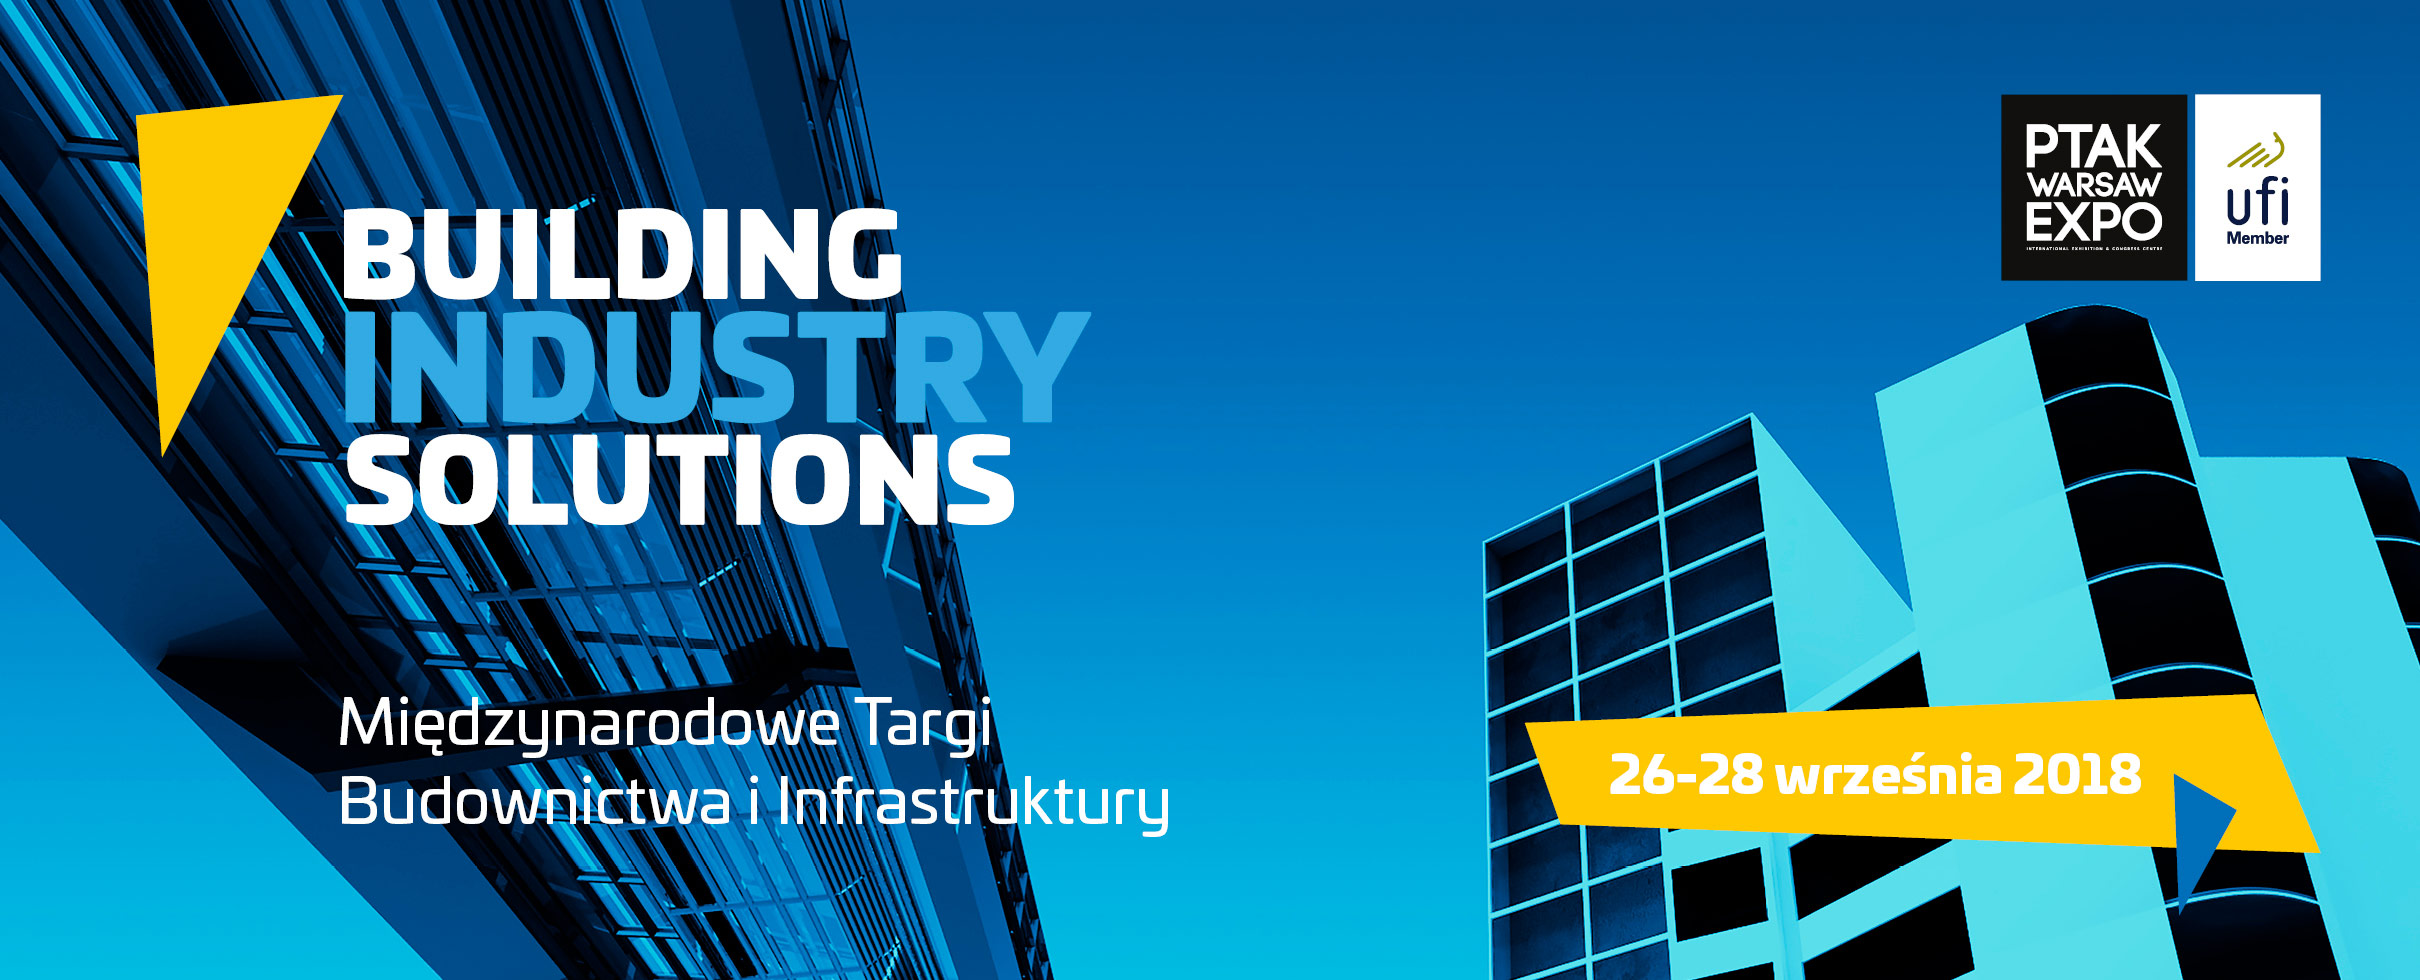 Building Industry Solutions-PTAK Warsaw Expo